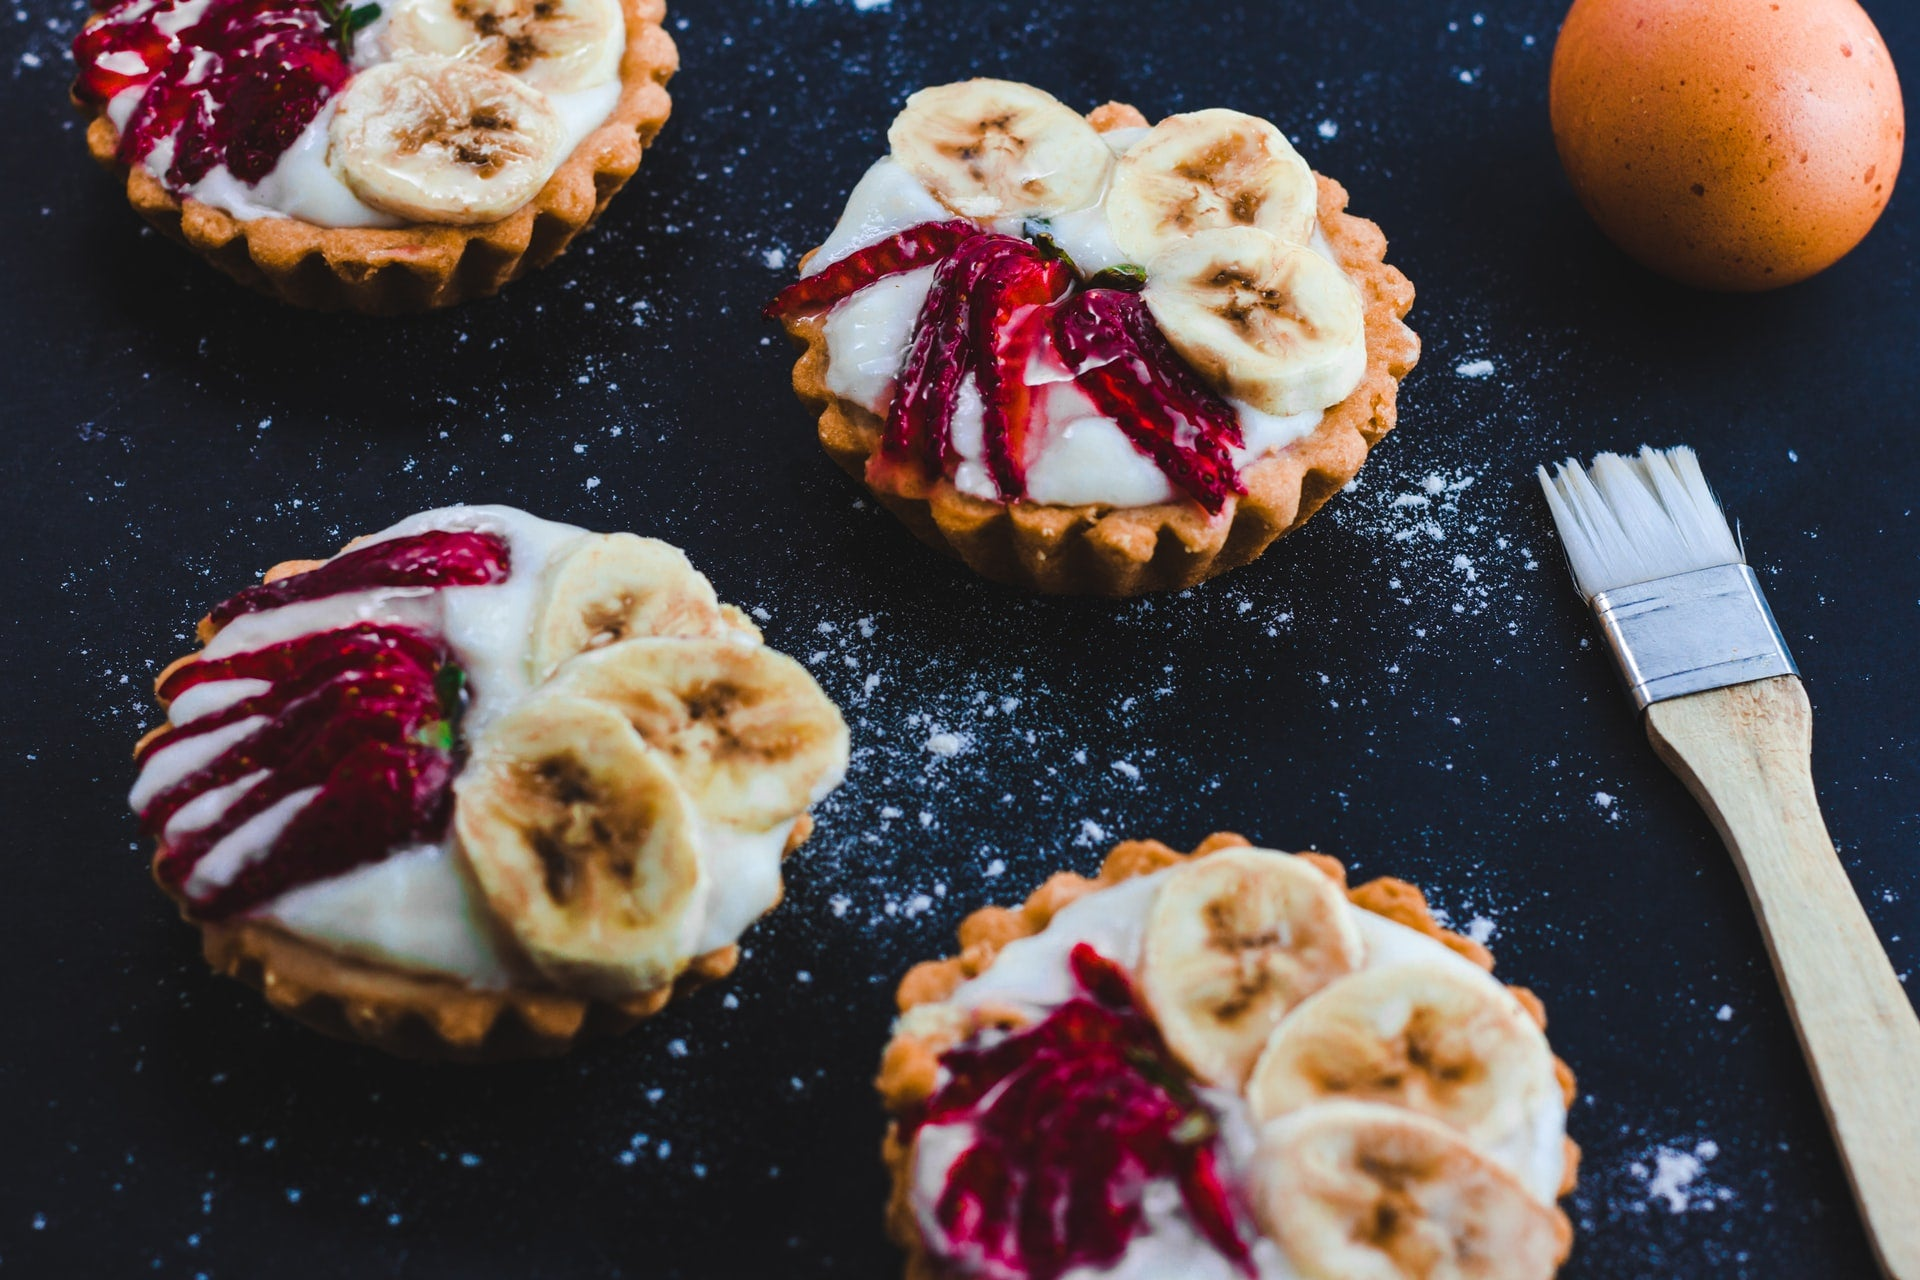 Little banana and chile tarts dusted with flour or sugar